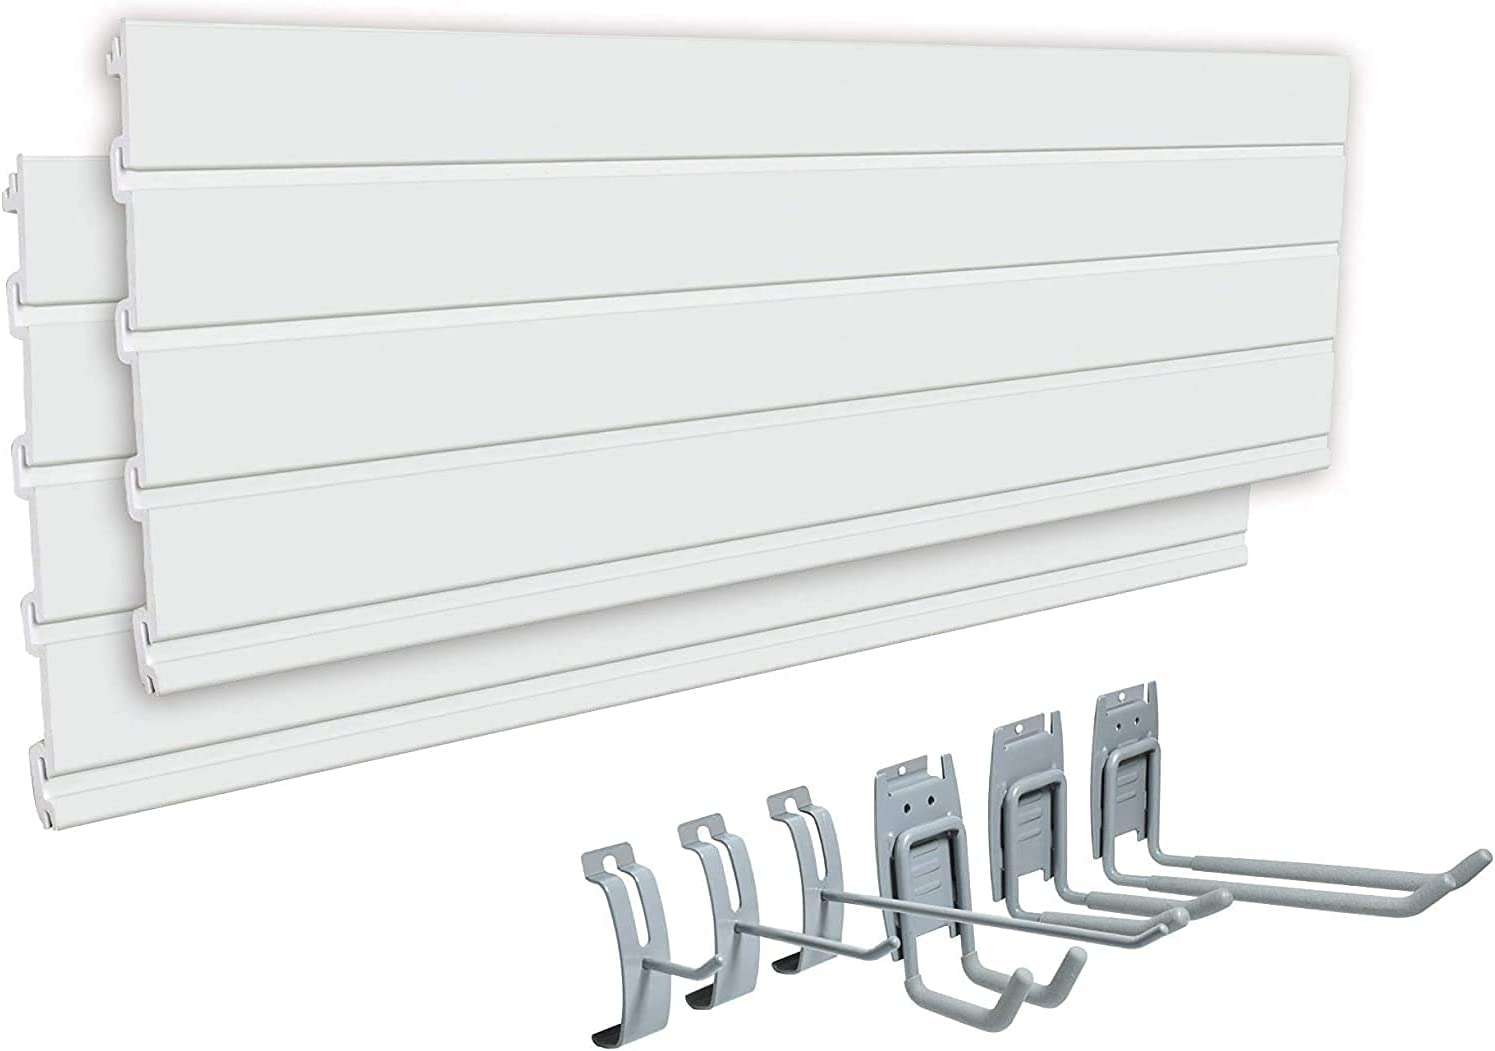 EASYUSE Home -Series Heavy Duty PVC Organizer Kit T 2PC Slatwall free shipping 67% OFF of fixed price